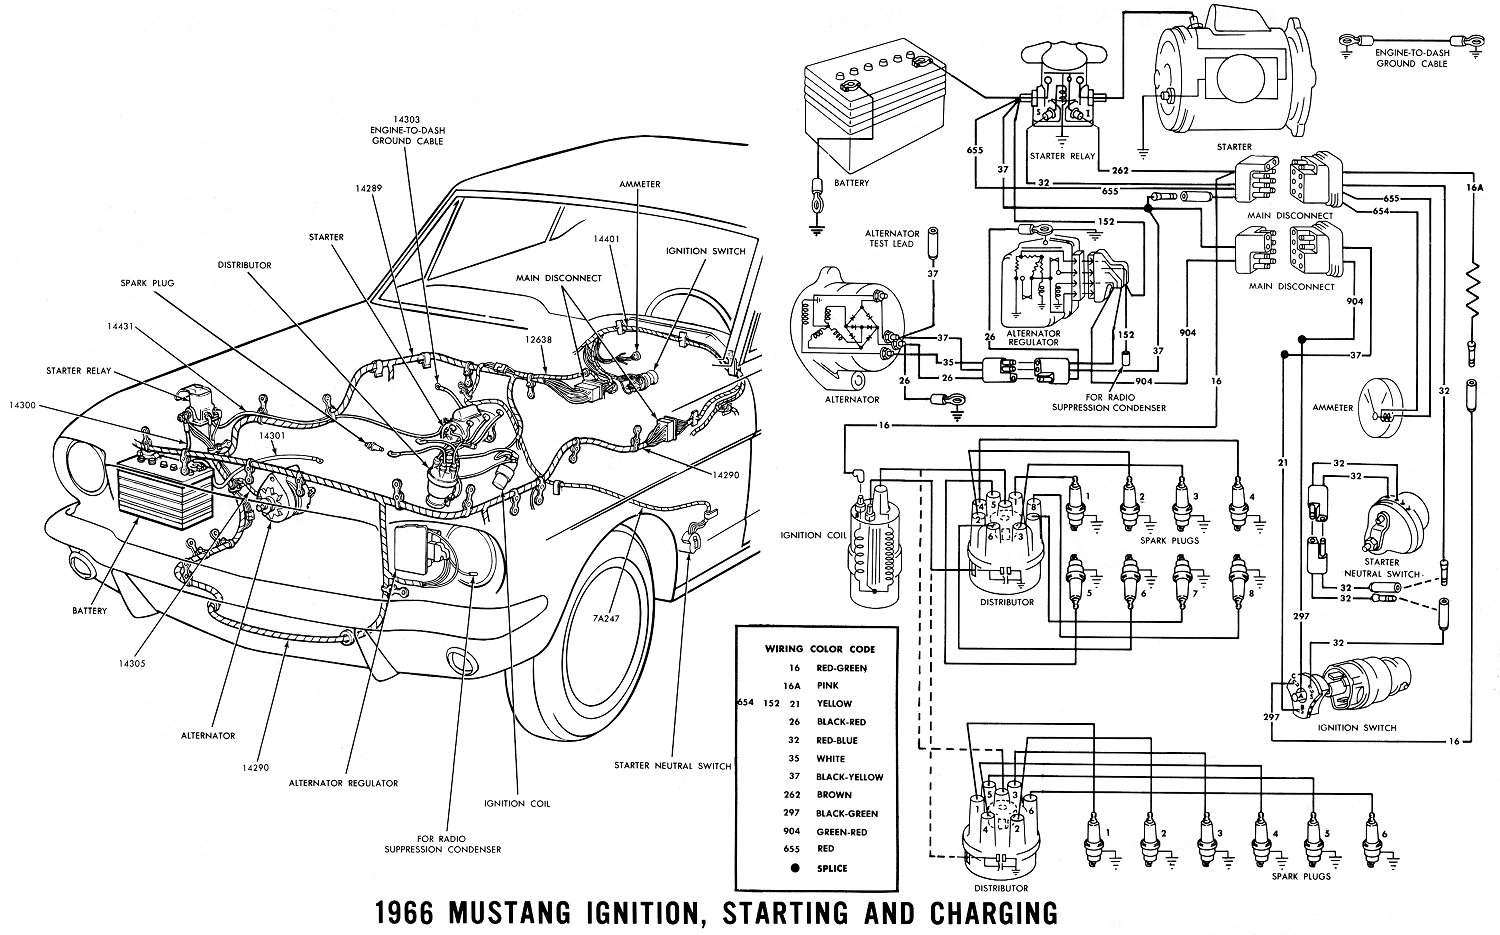 66ignit 1966 mustang wiring diagrams average joe restoration 1965 ford mustang wiring diagrams at gsmportal.co